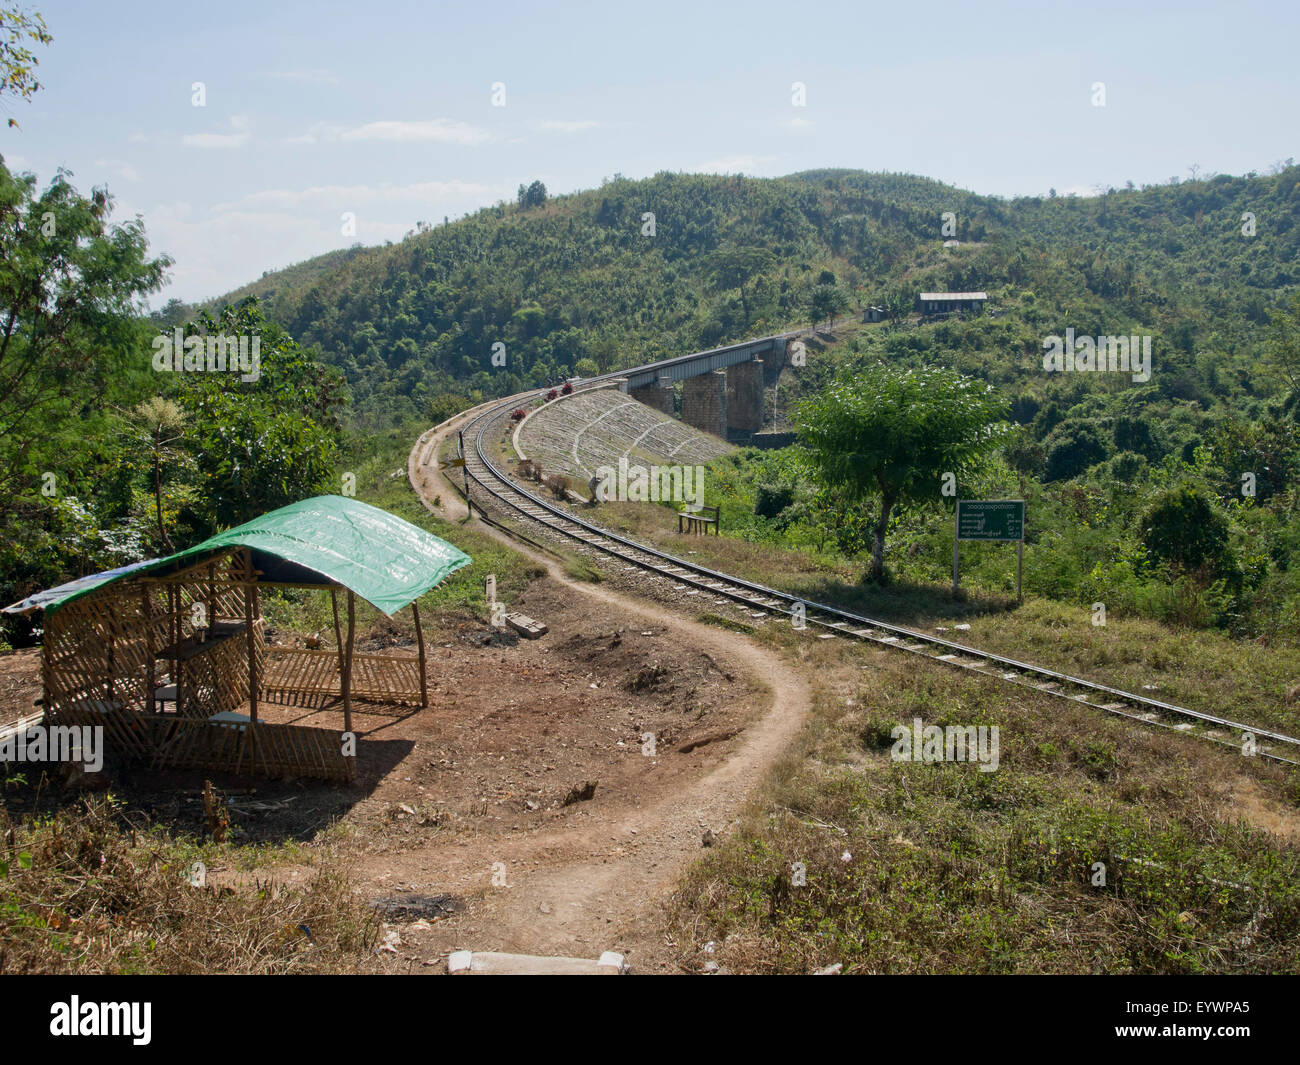 Section of the infamous Death Railway built by POWs during WWII in Shan State, Myanmar (Burma), Asia - Stock Image